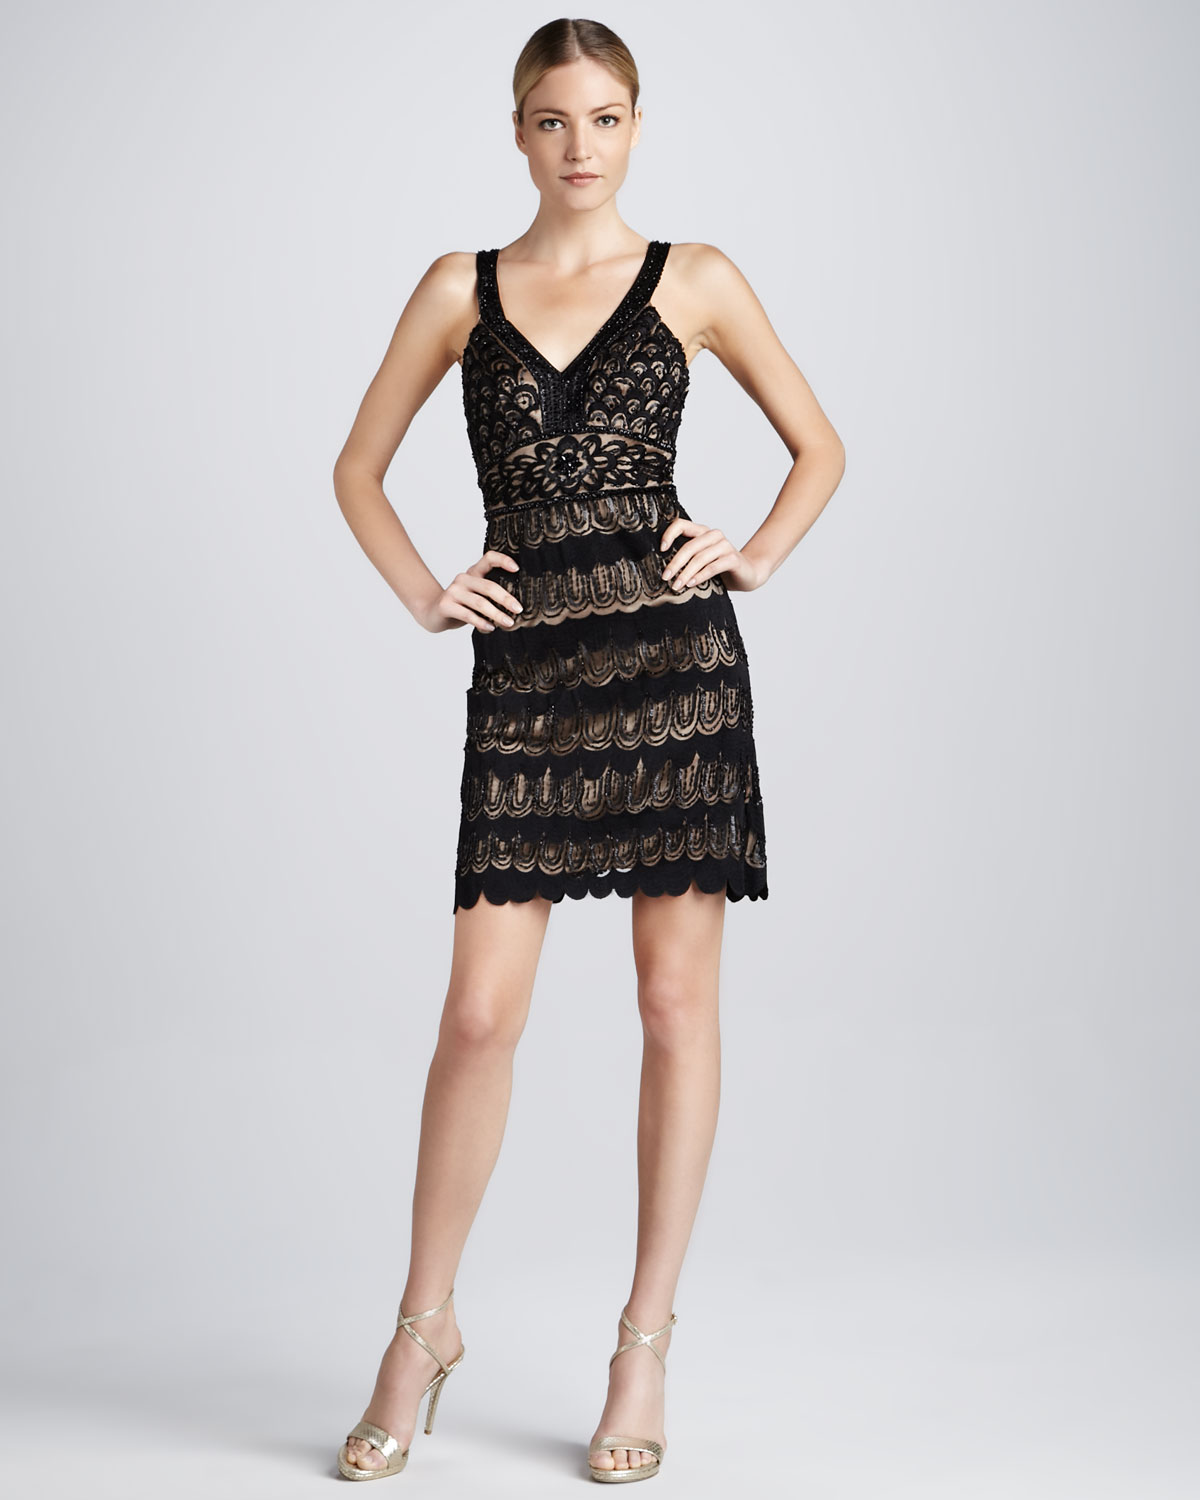 637f6e62cffe0 Gallery. Previously sold at  Neiman Marcus · Women s Black Lace Cocktail  Dresses ...